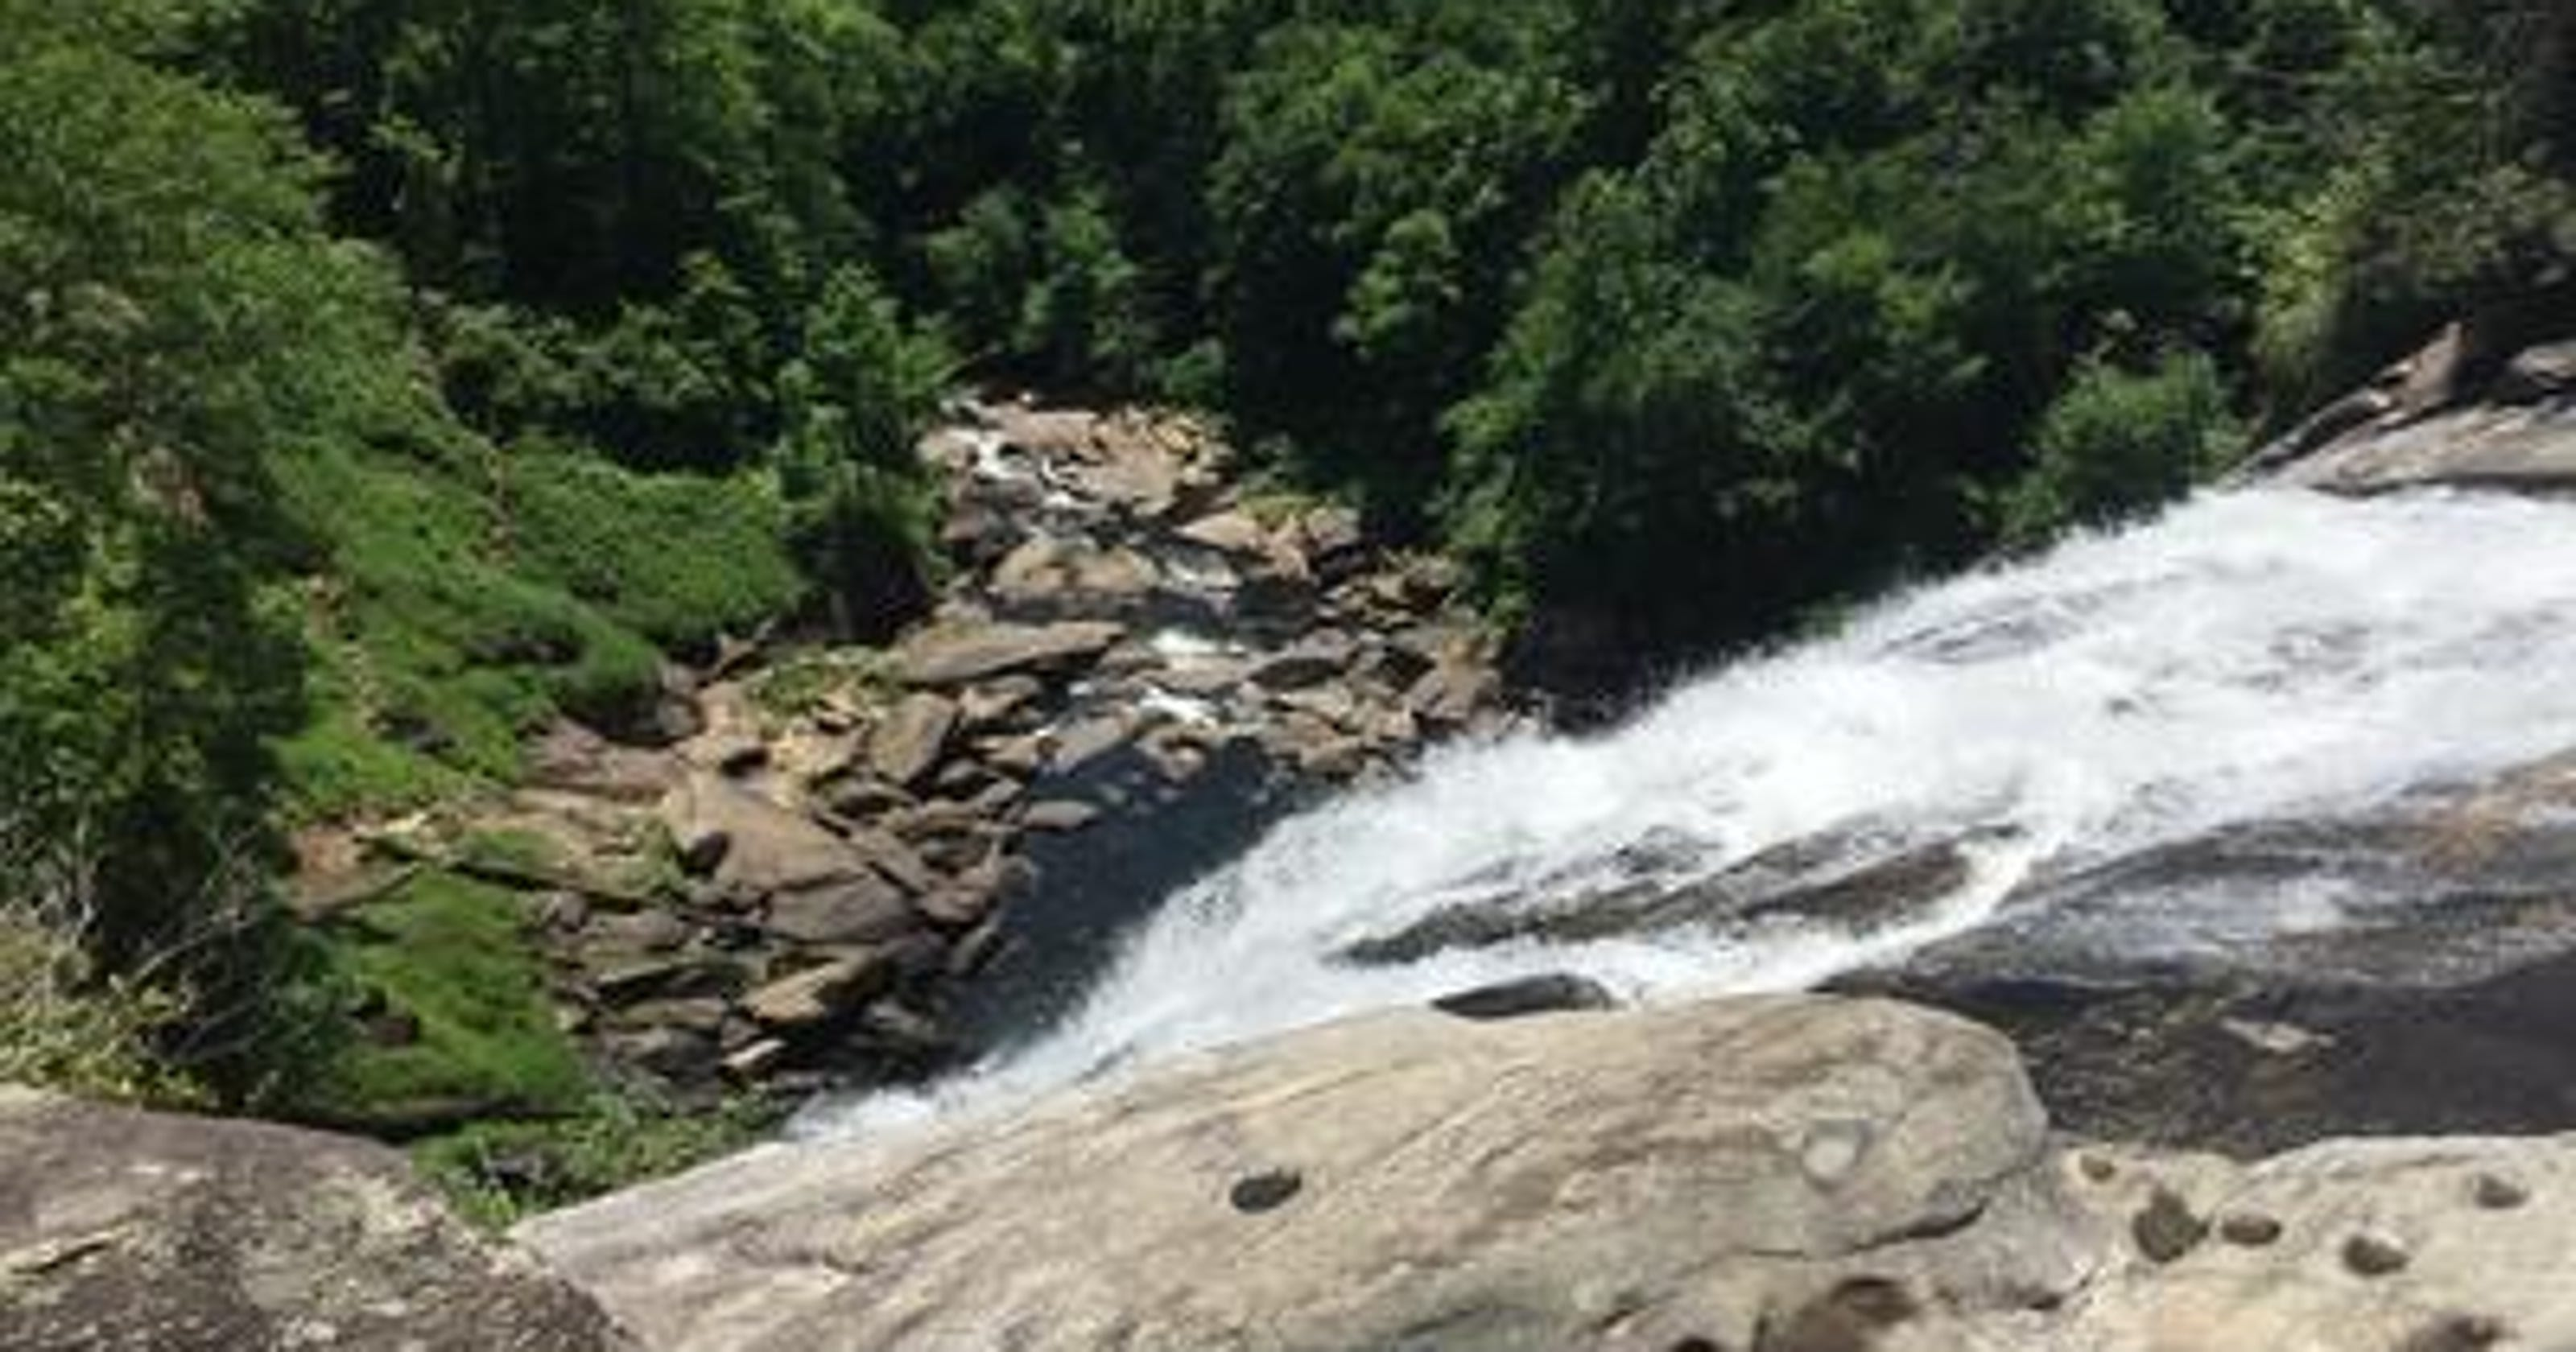 Man died trying to save dog at Rainbow Falls in Transylvania County